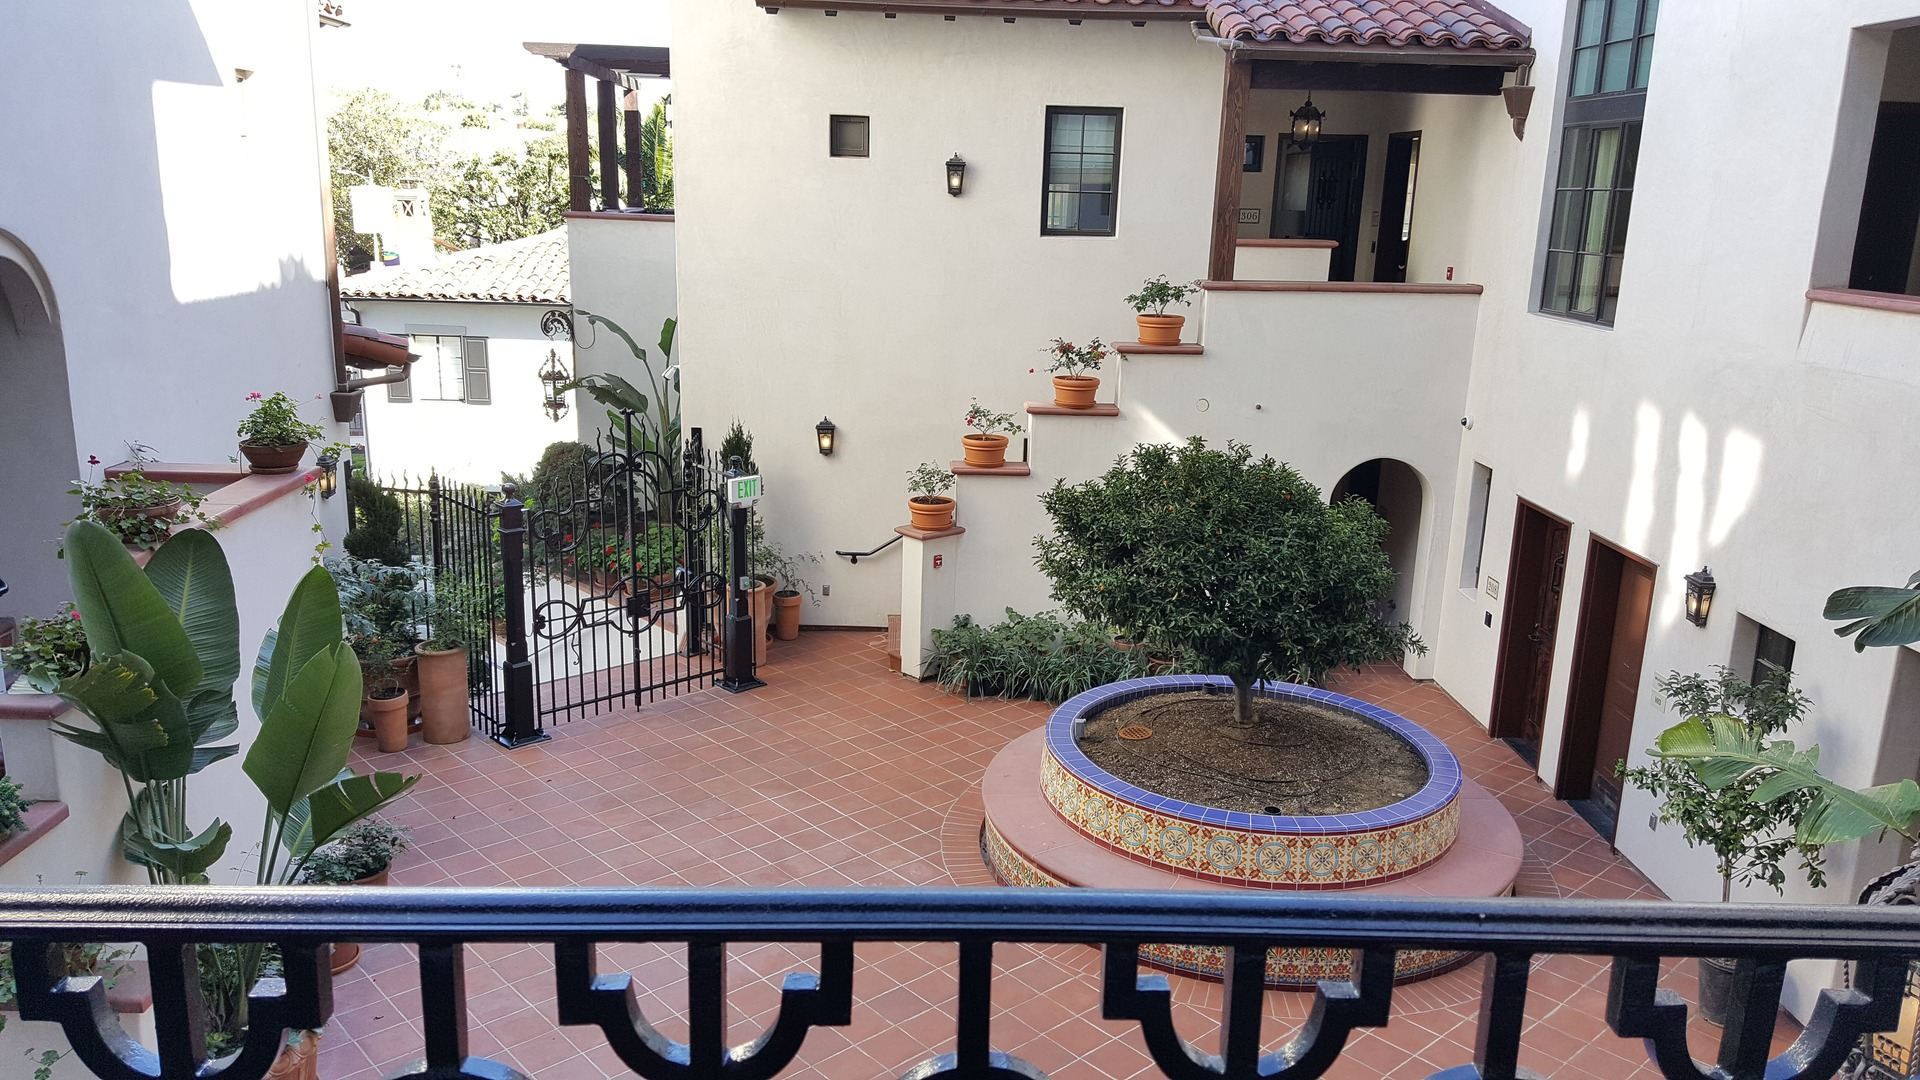 The cozy courtyard of the Plaza La Reina is complimented by the bronze finish on the windows and doors from St. Cloud Window.